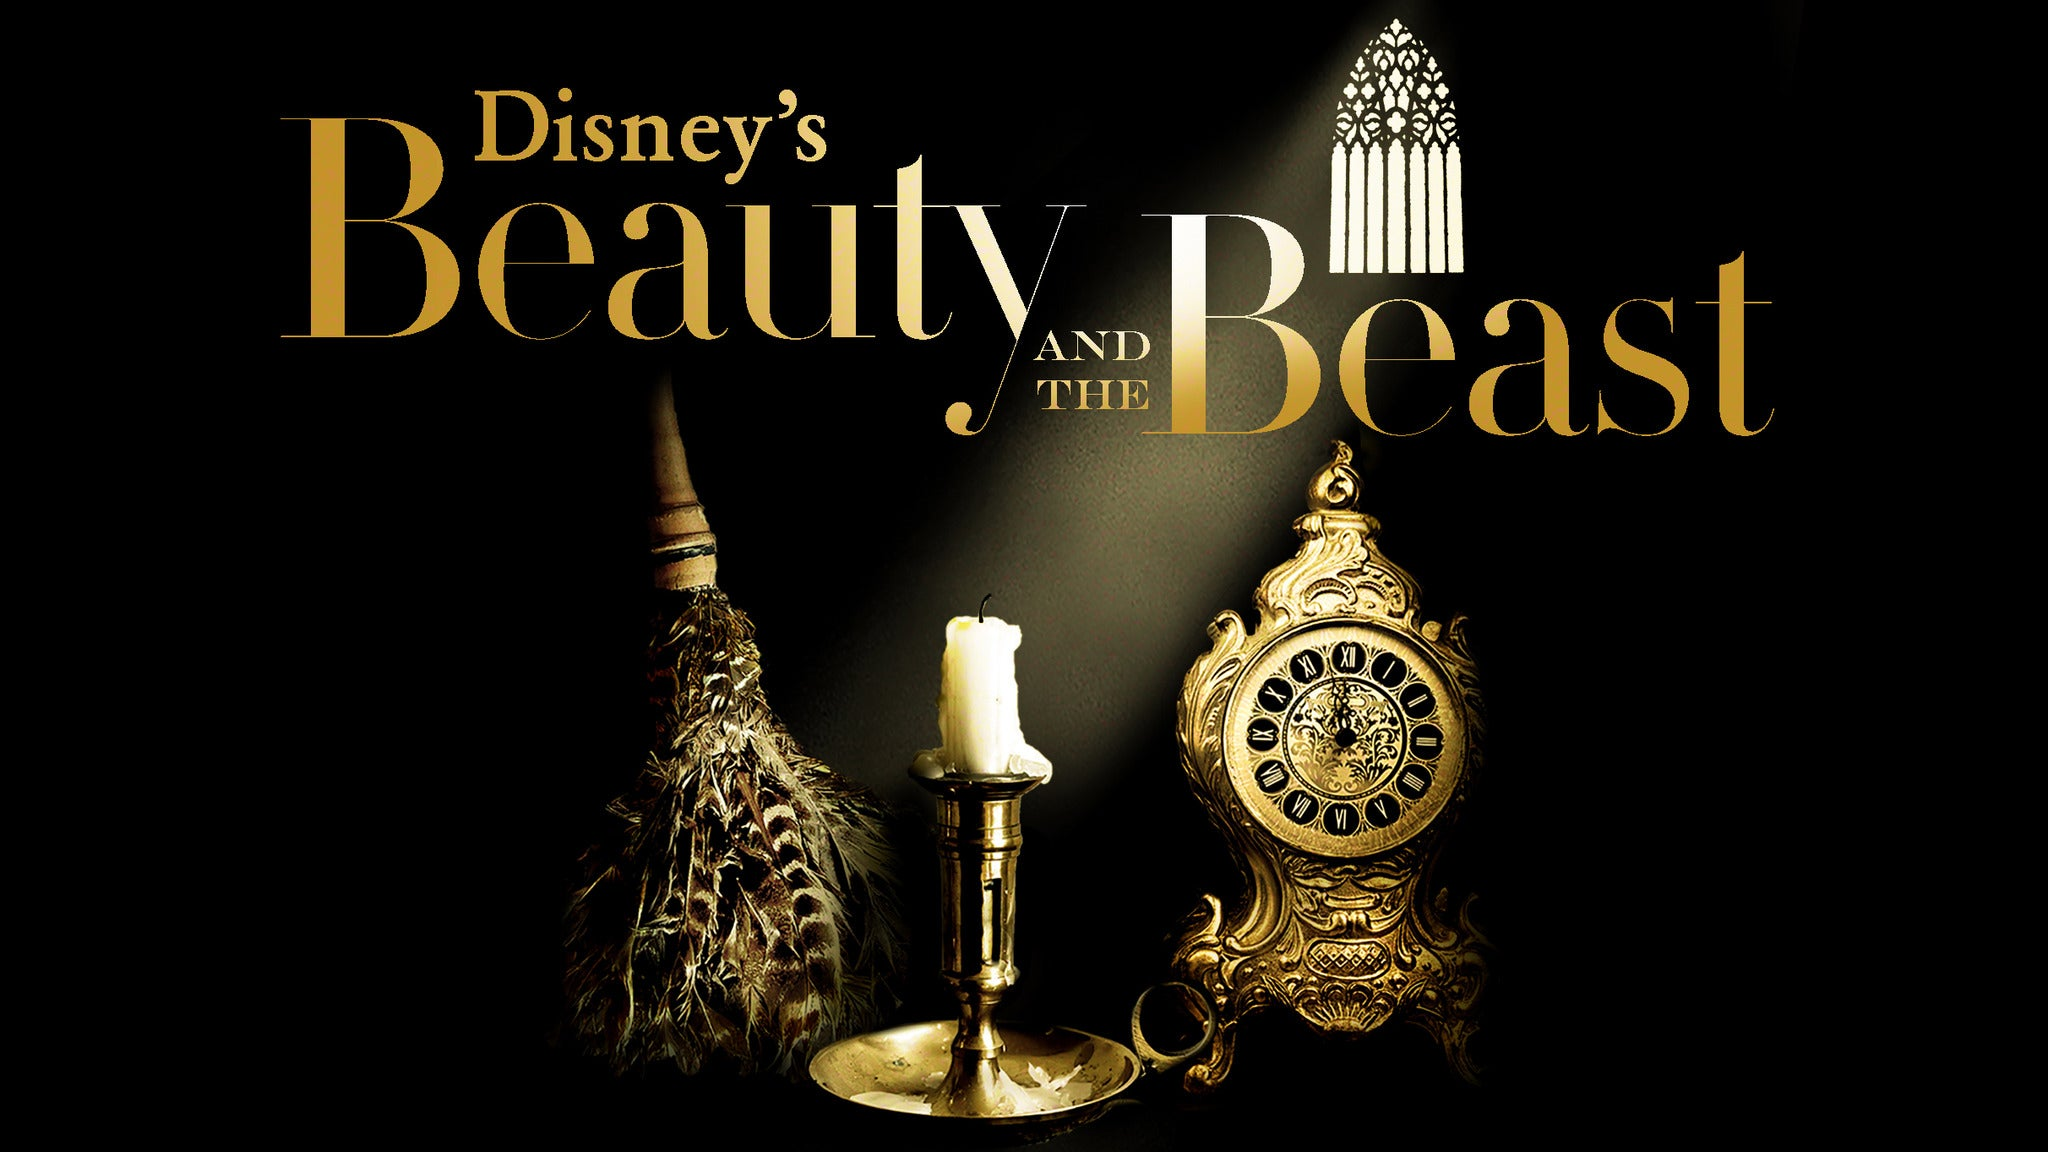 Drury Lane Presents: Disney's Beauty and the Beast